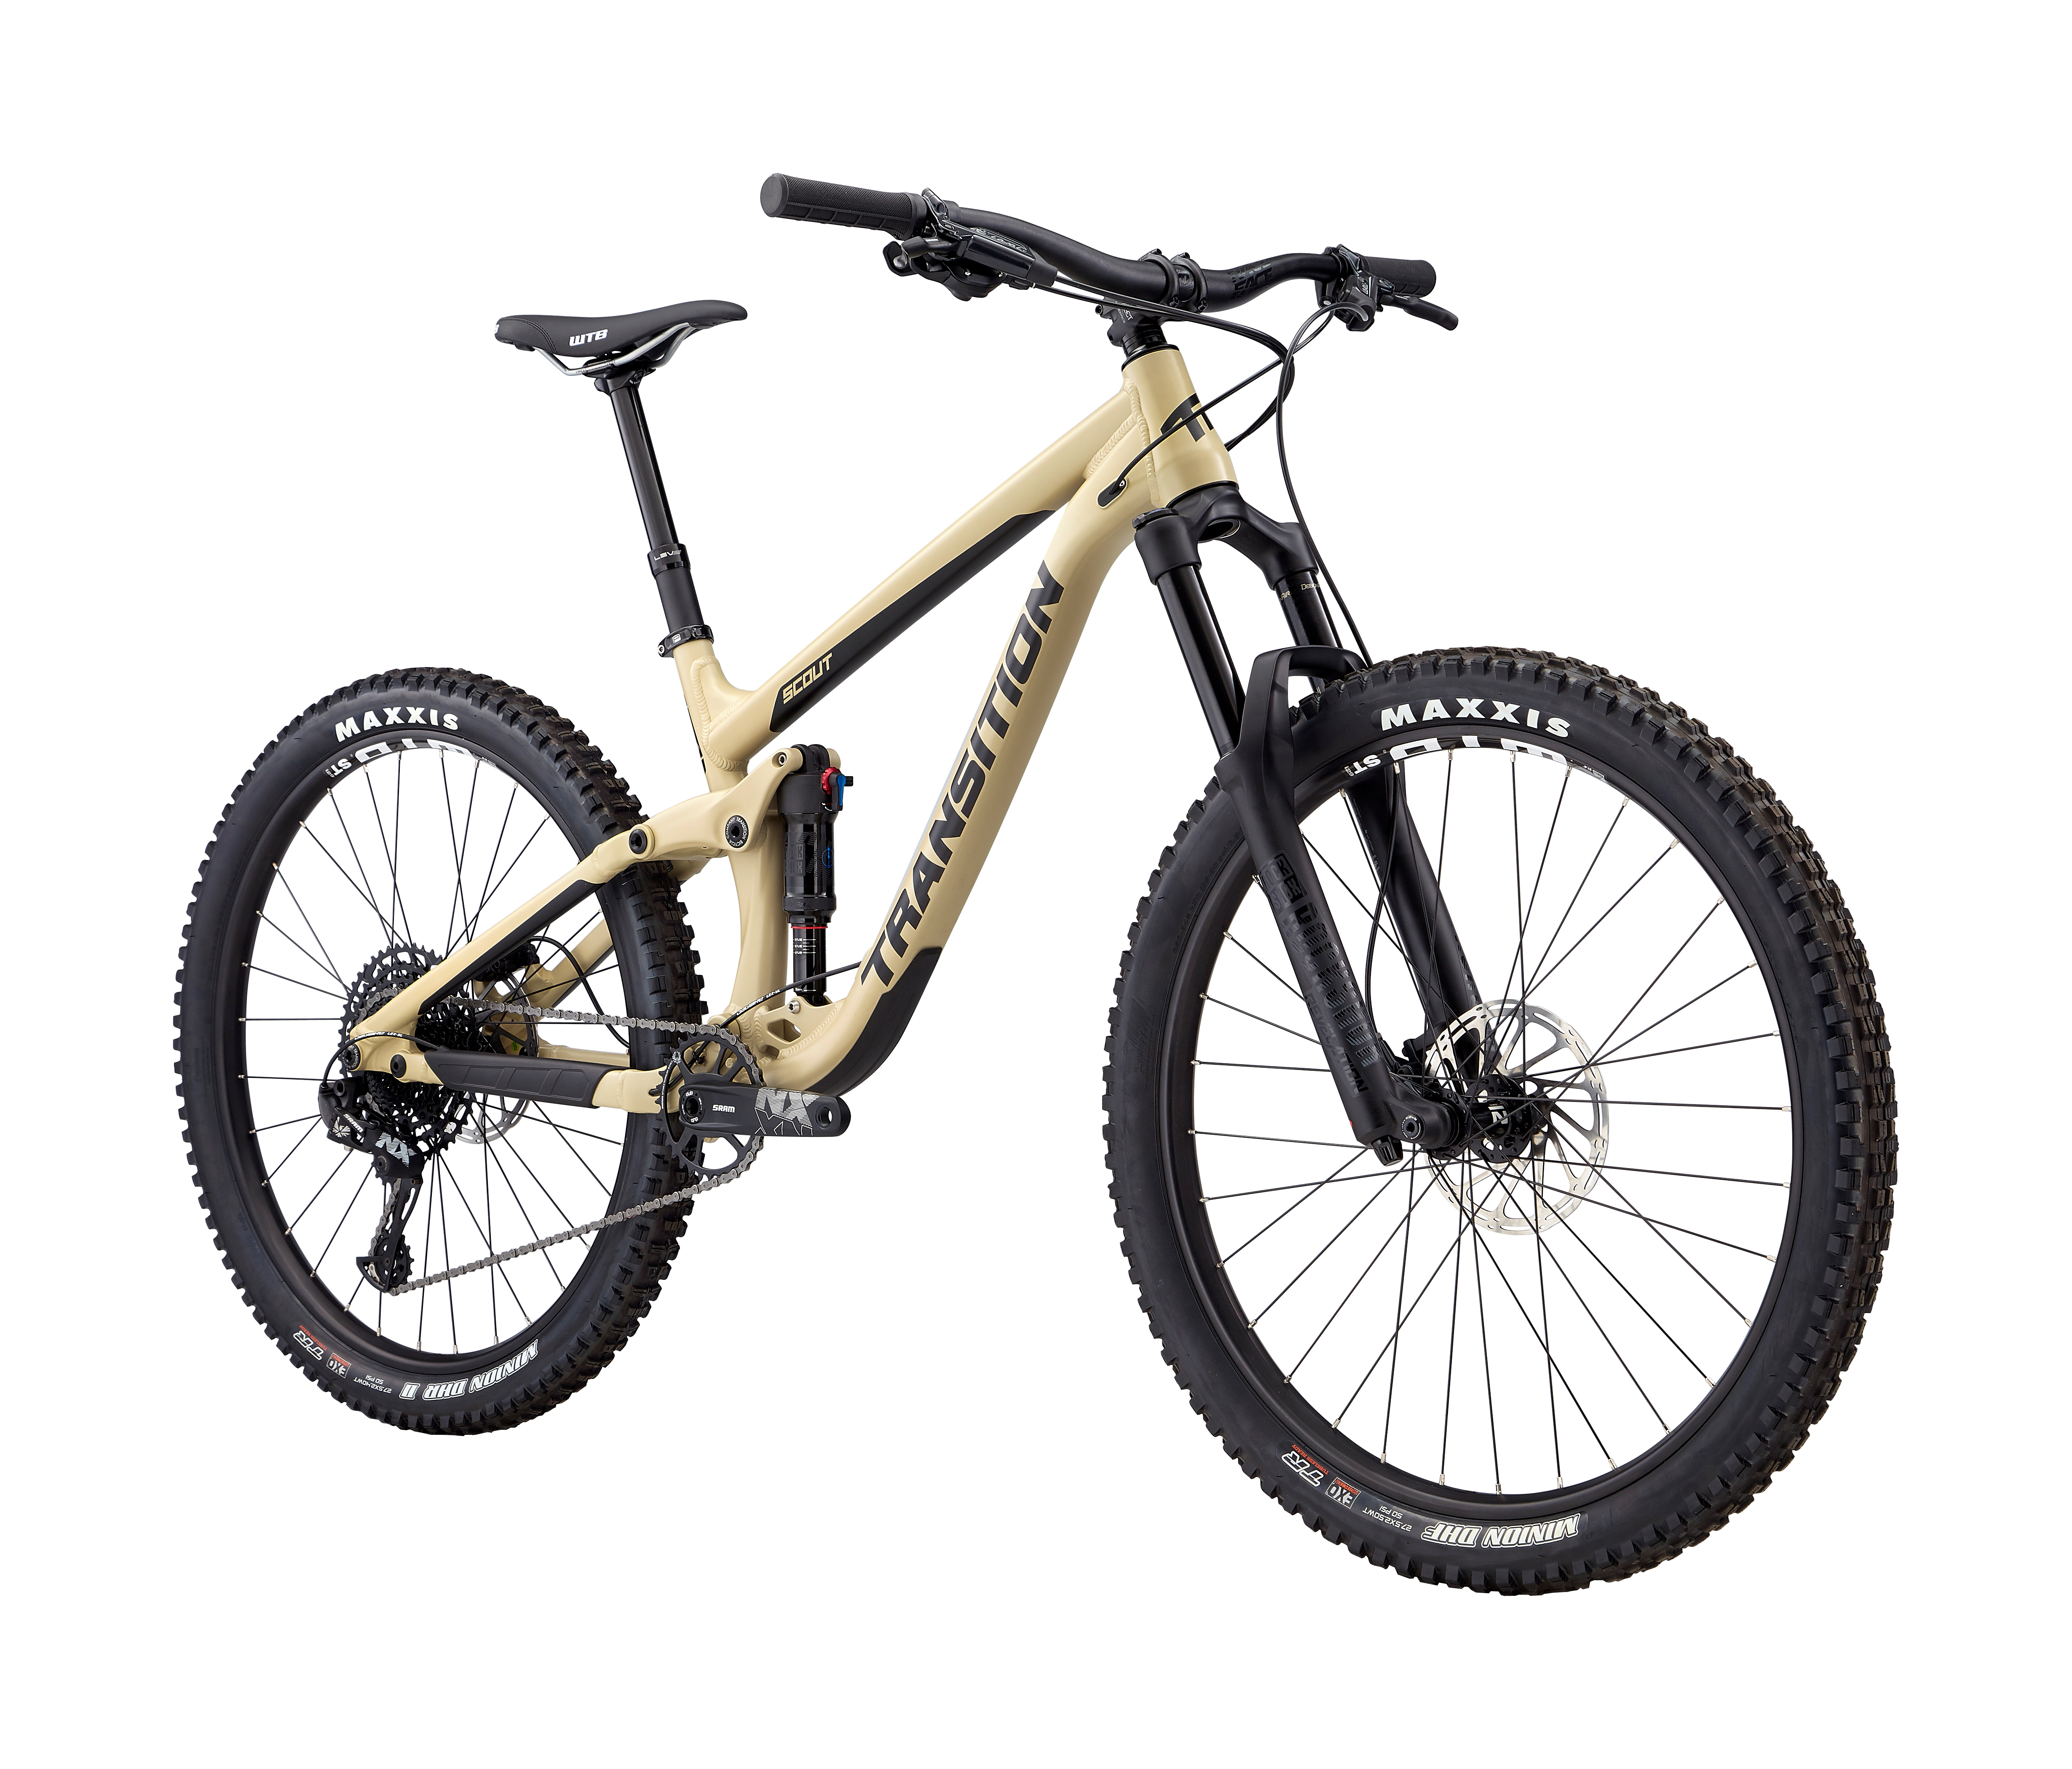 2019 Transition Scout NX Alloy Full Suspension Mountain Bike in Brown | MTB